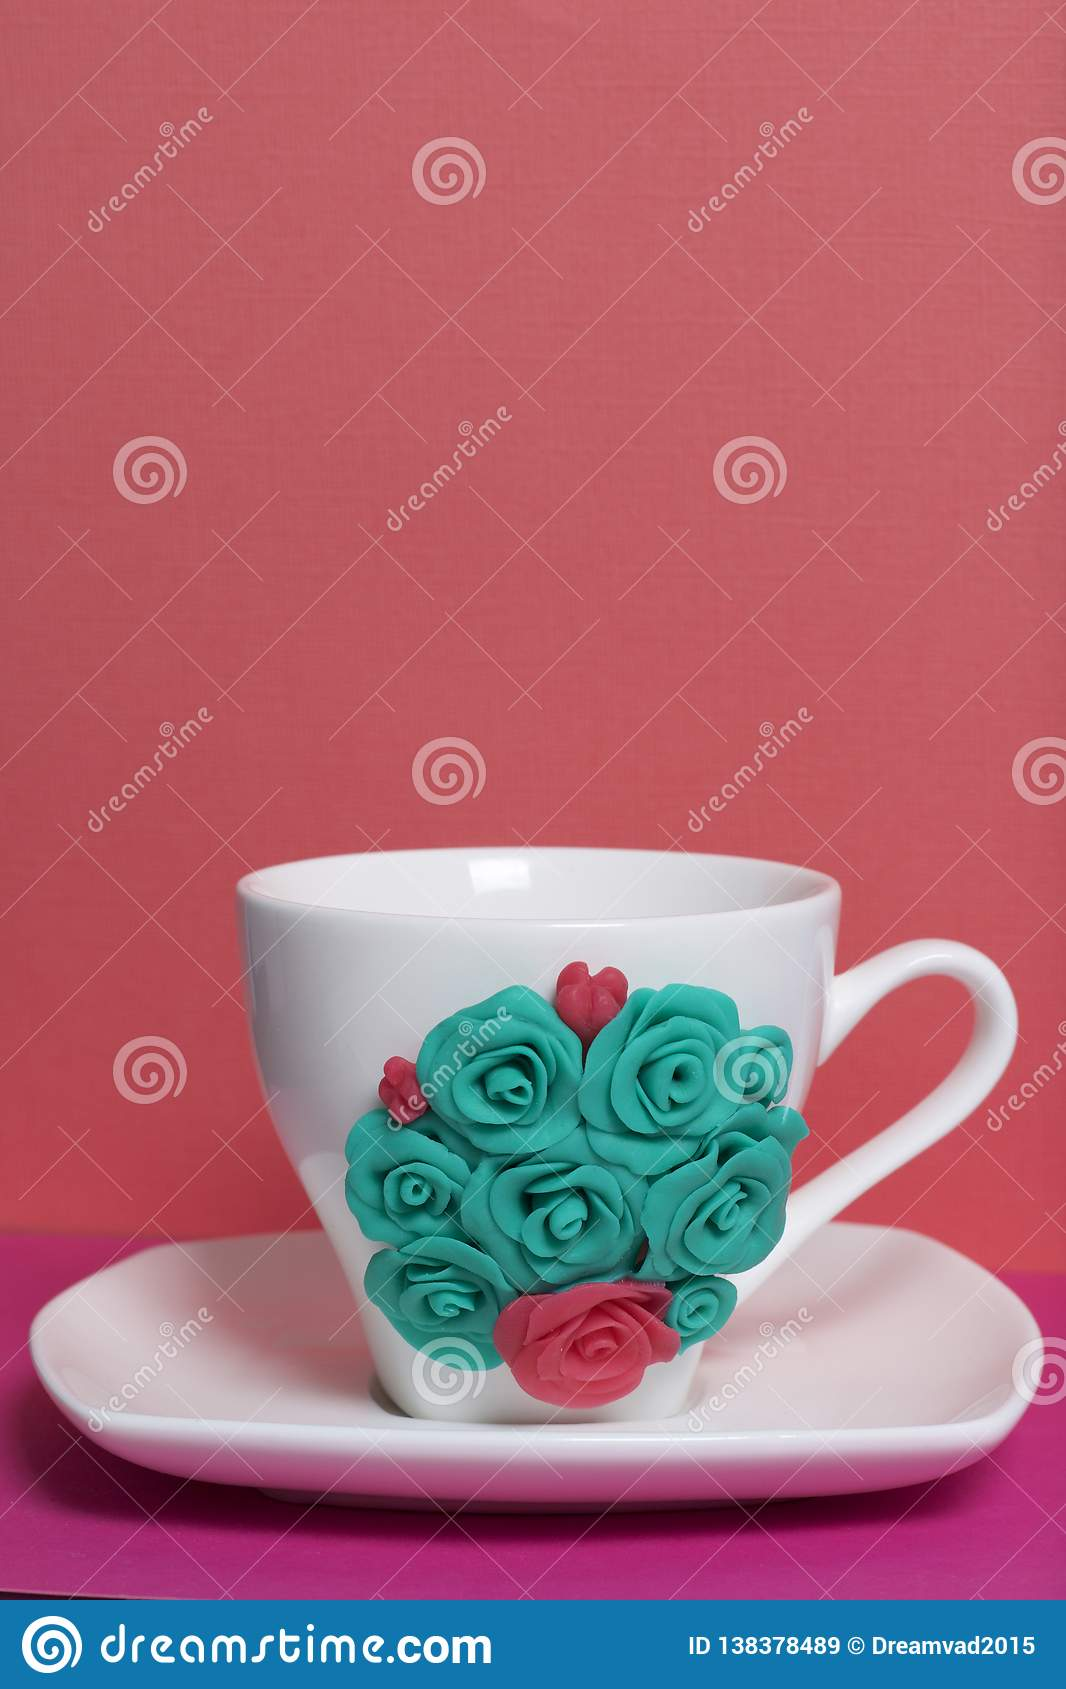 Mug Decorated With Flowers Made Of Polymer Clay Stock Image Image Of Flowers Sculpting 138378489